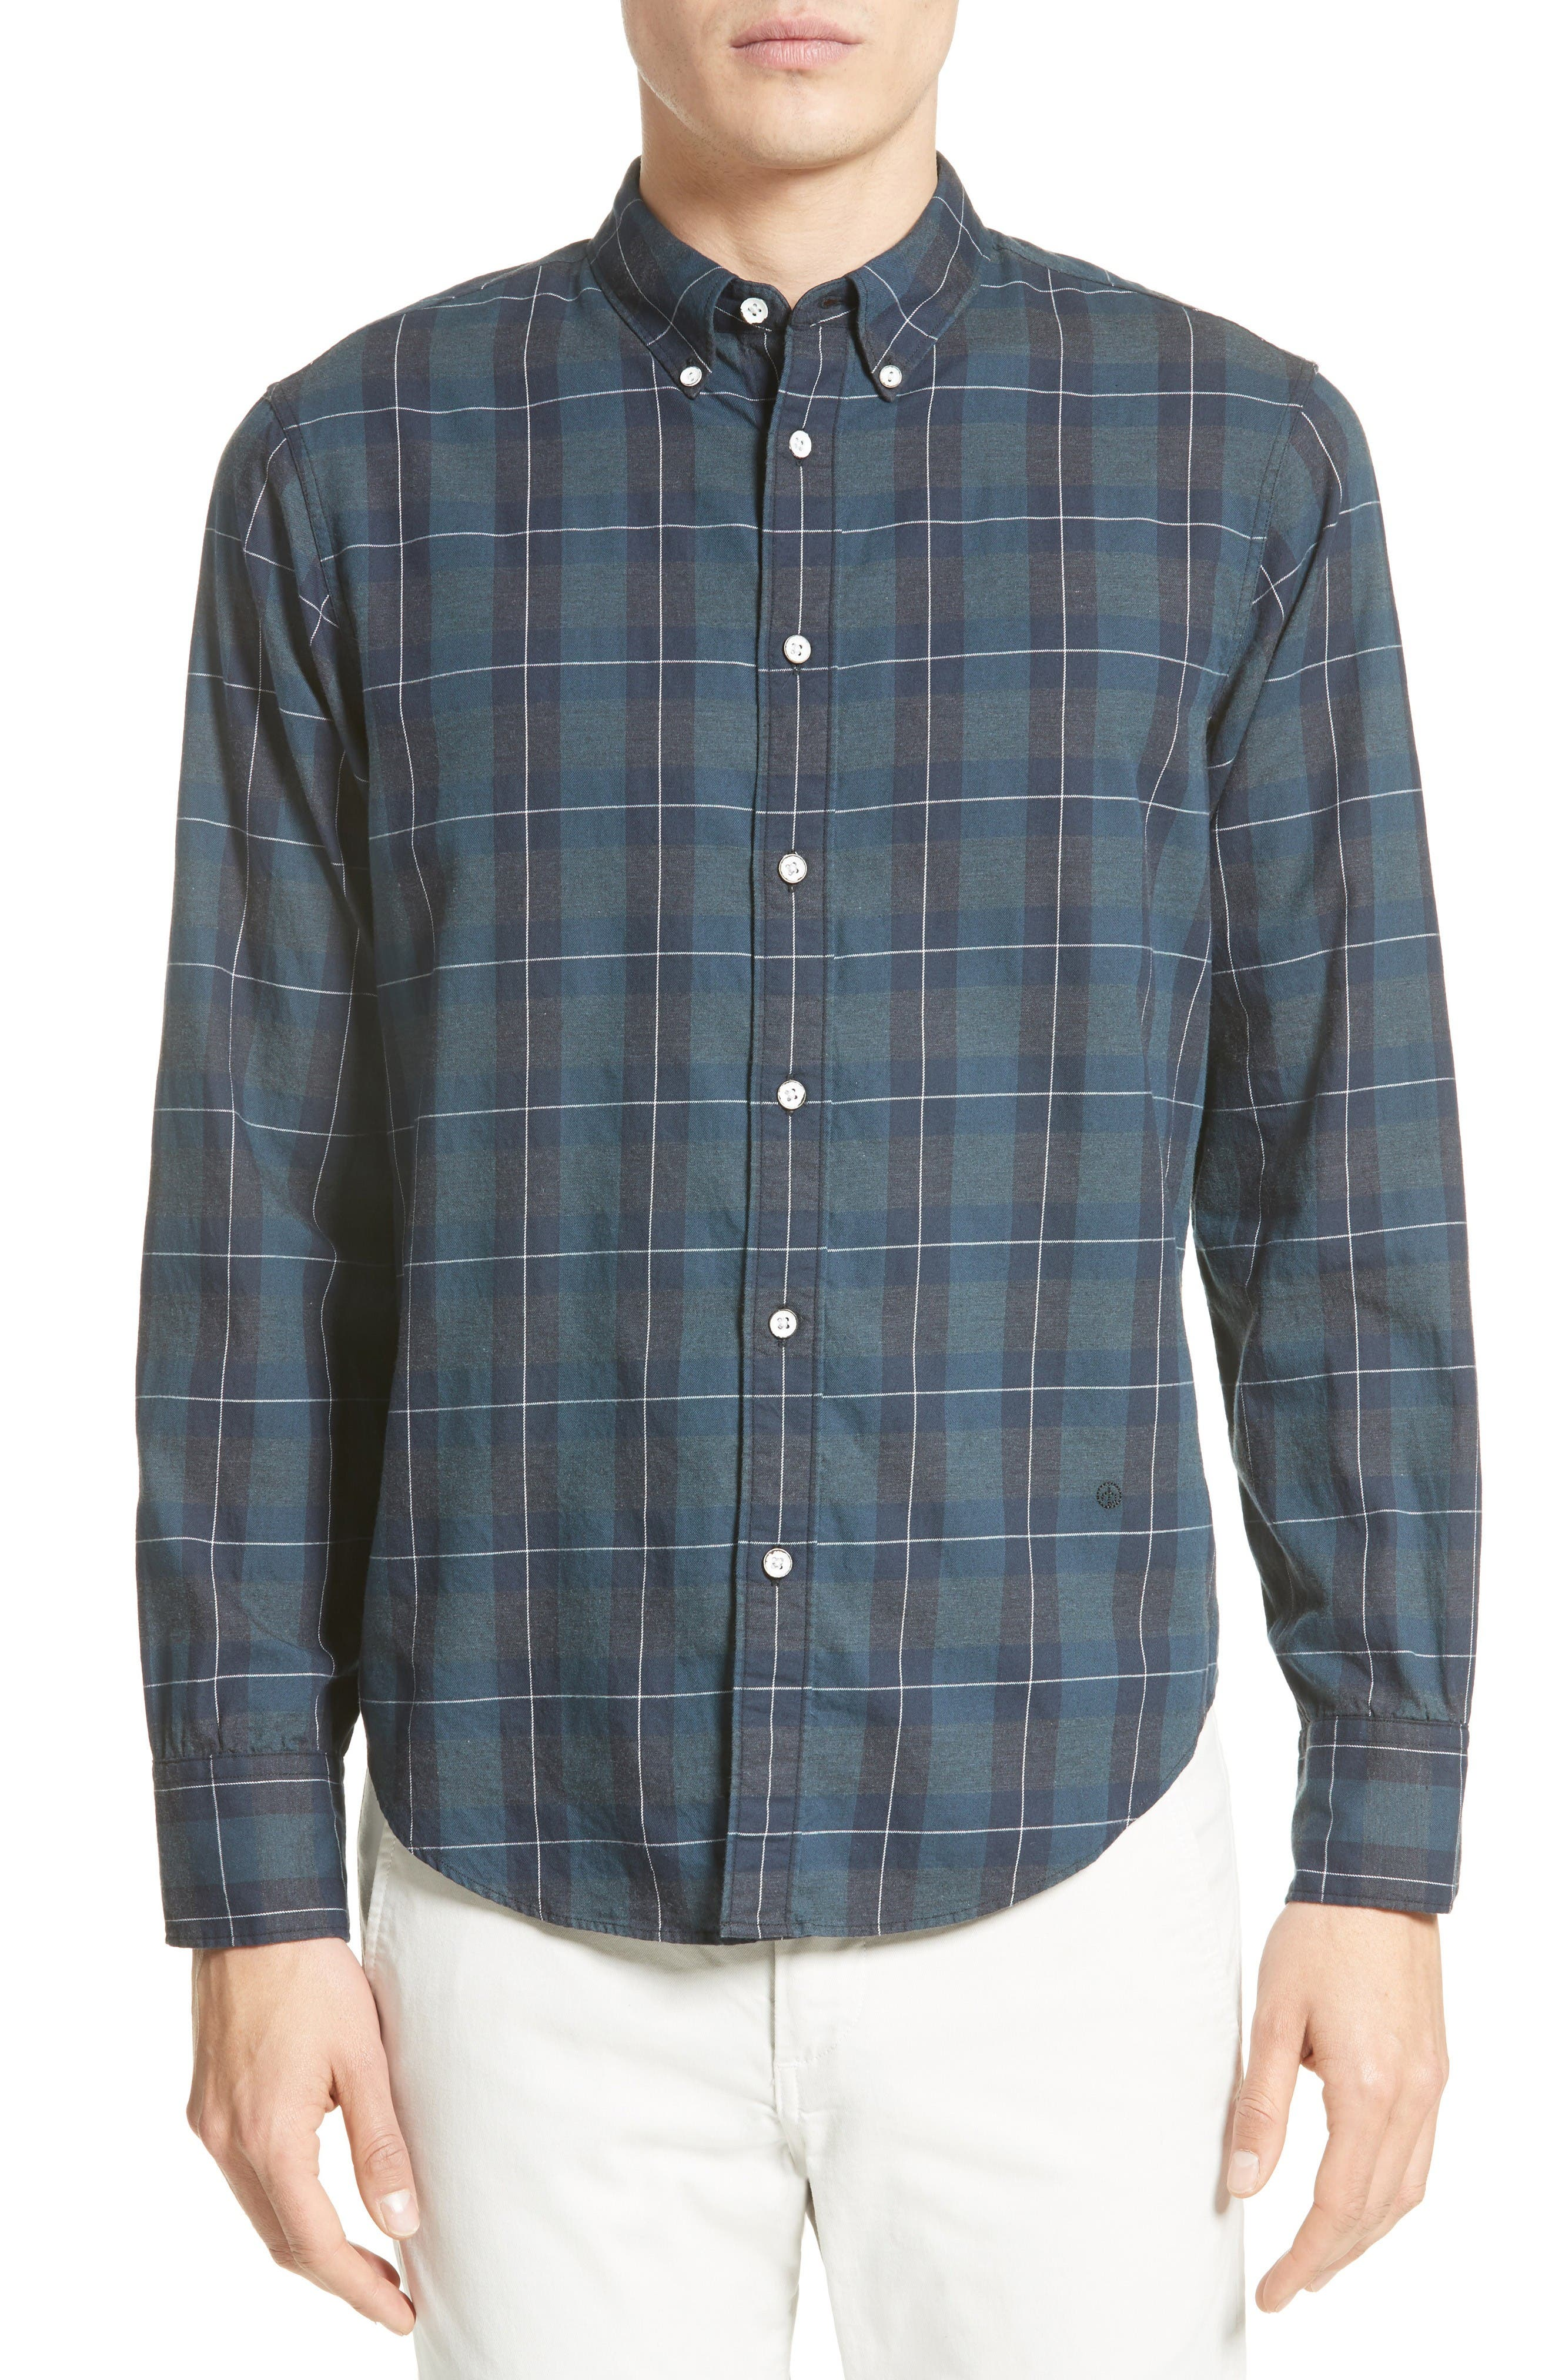 Tomlin Plaid Sport Shirt,                             Main thumbnail 1, color,                             Navy Multi